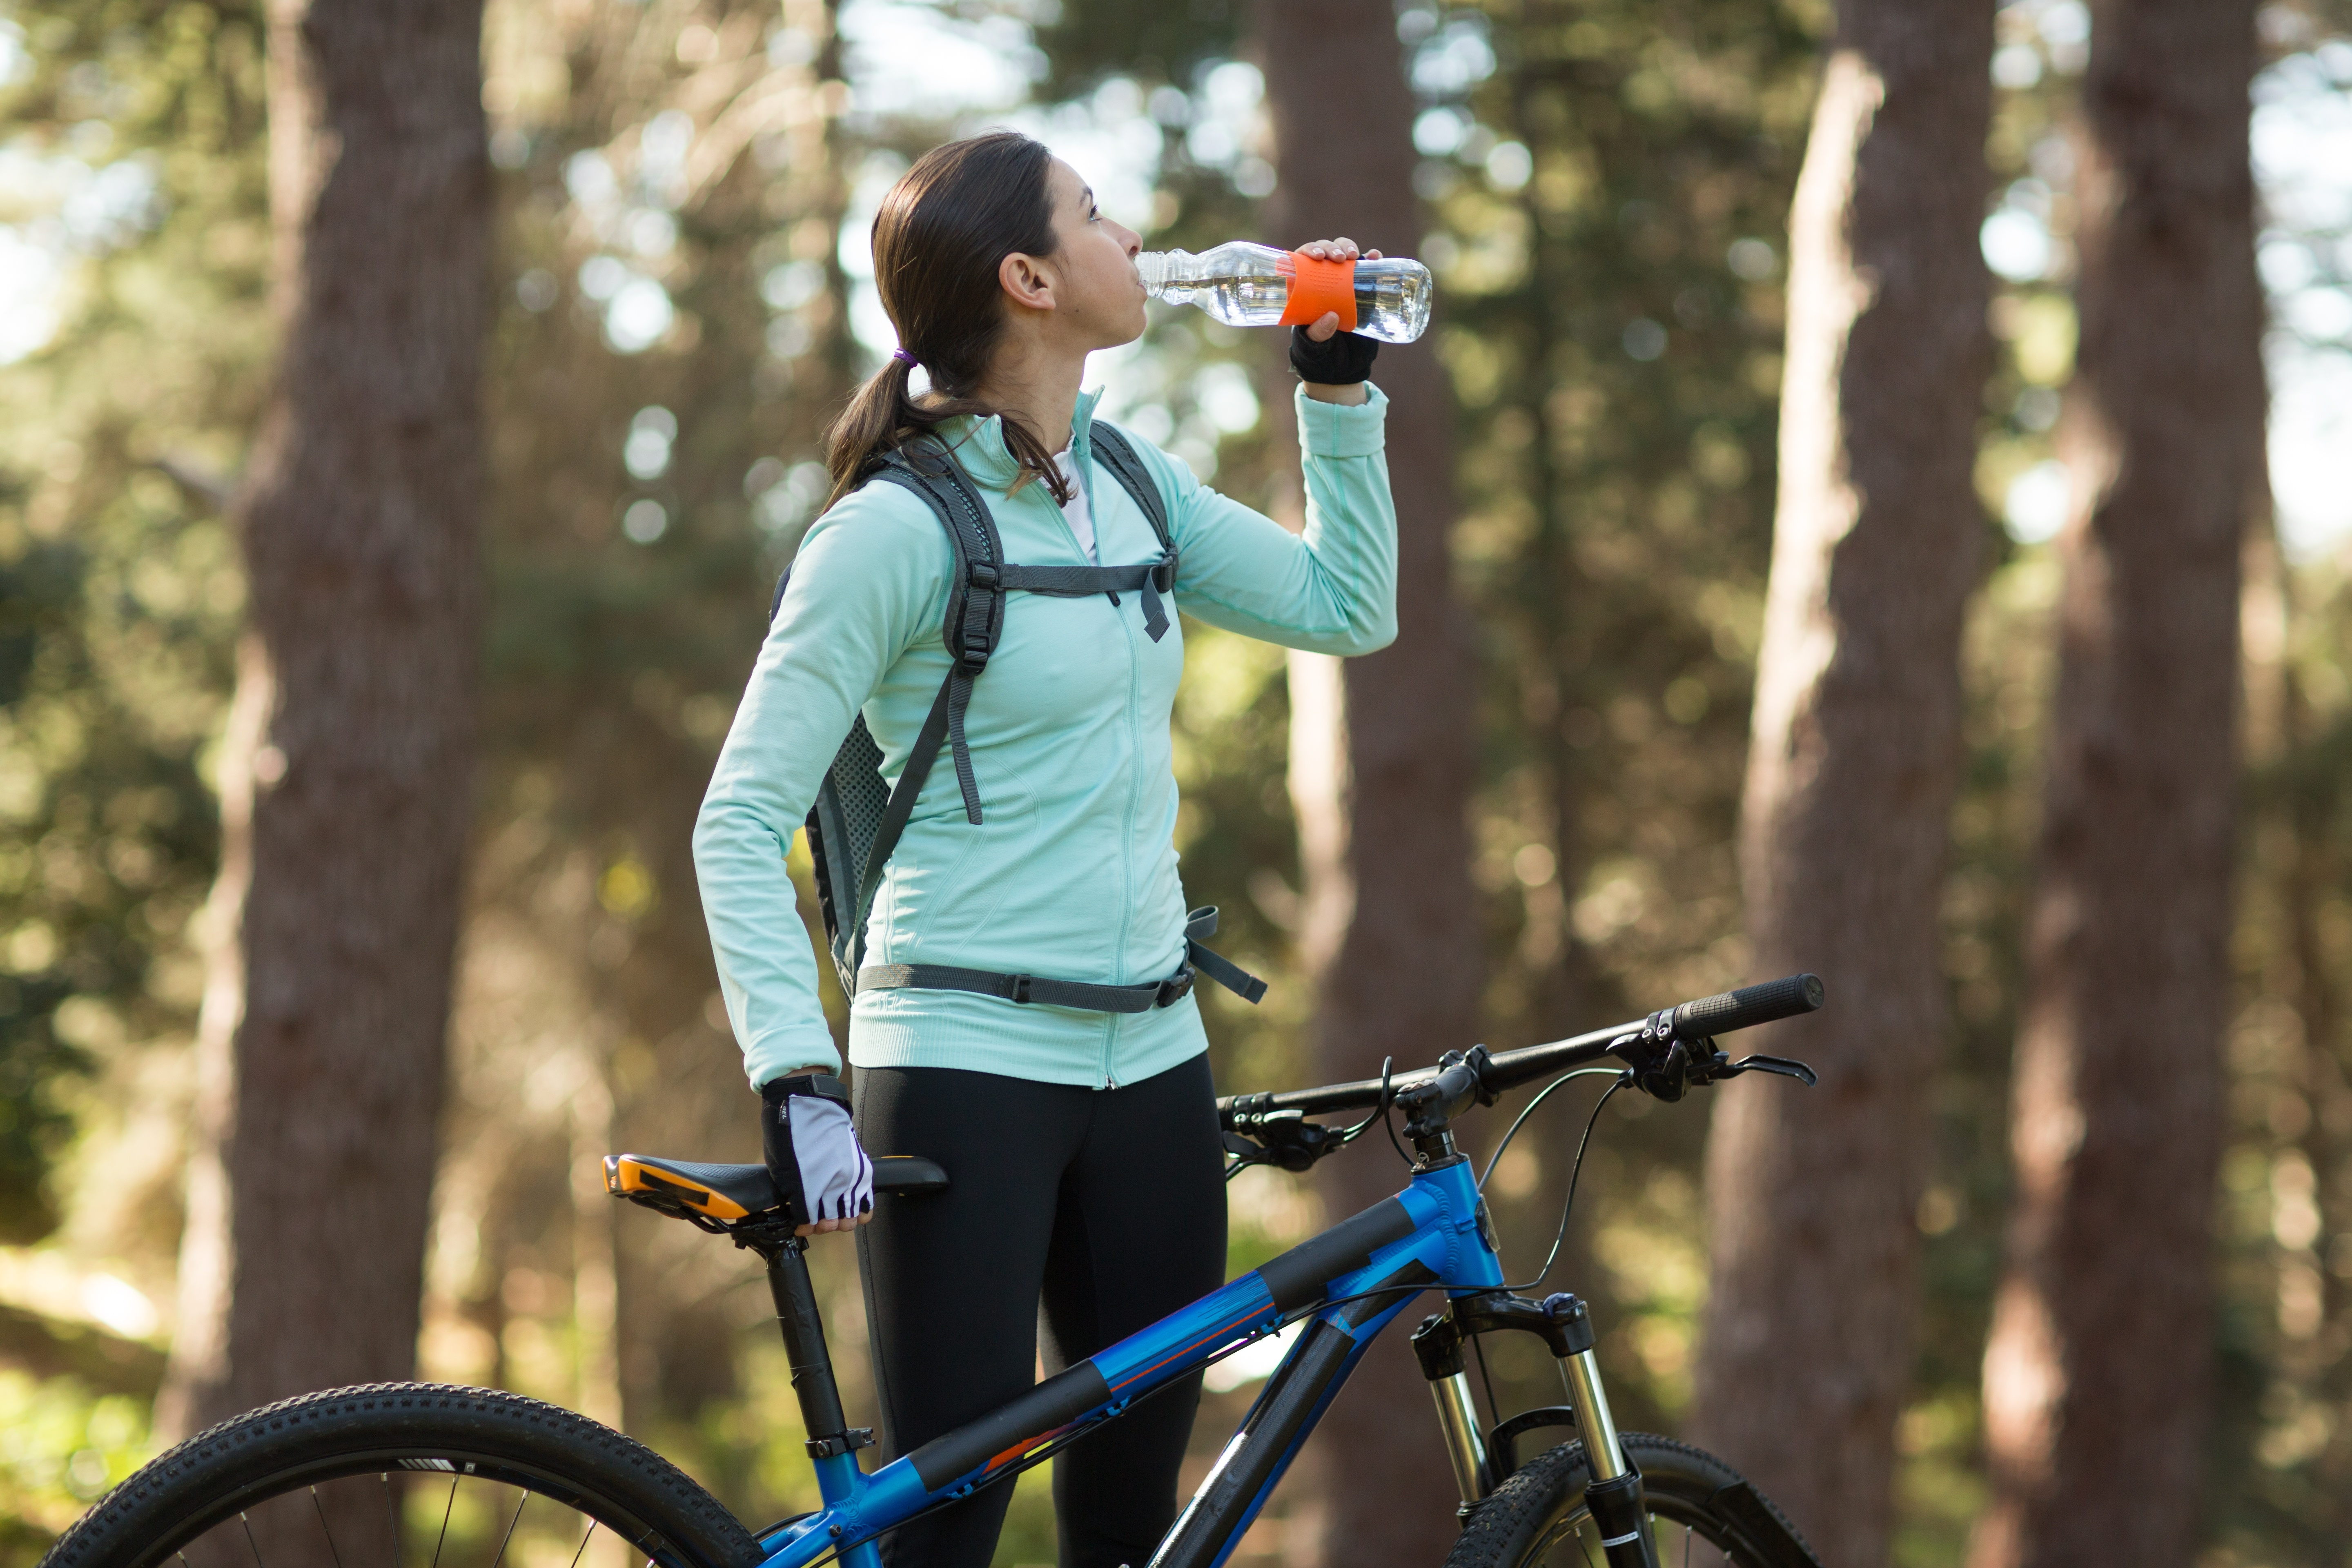 woman hydrating while riding her bike